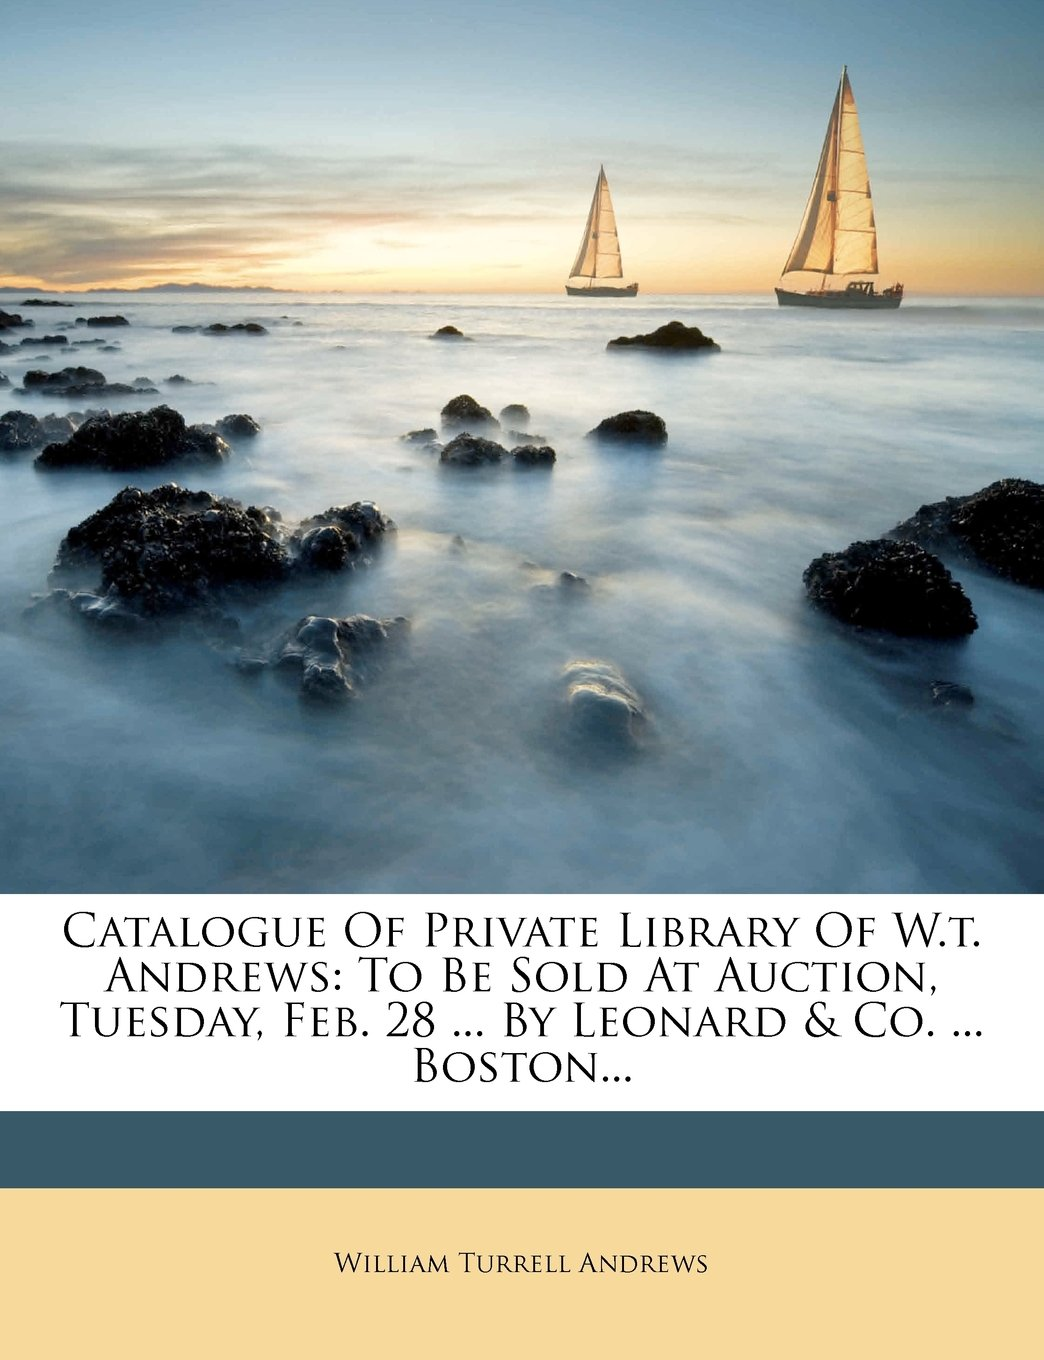 Catalogue Of Private Library Of W.t. Andrews: To Be Sold At Auction, Tuesday, Feb. 28 ... By Leonard & Co. ... Boston... ebook